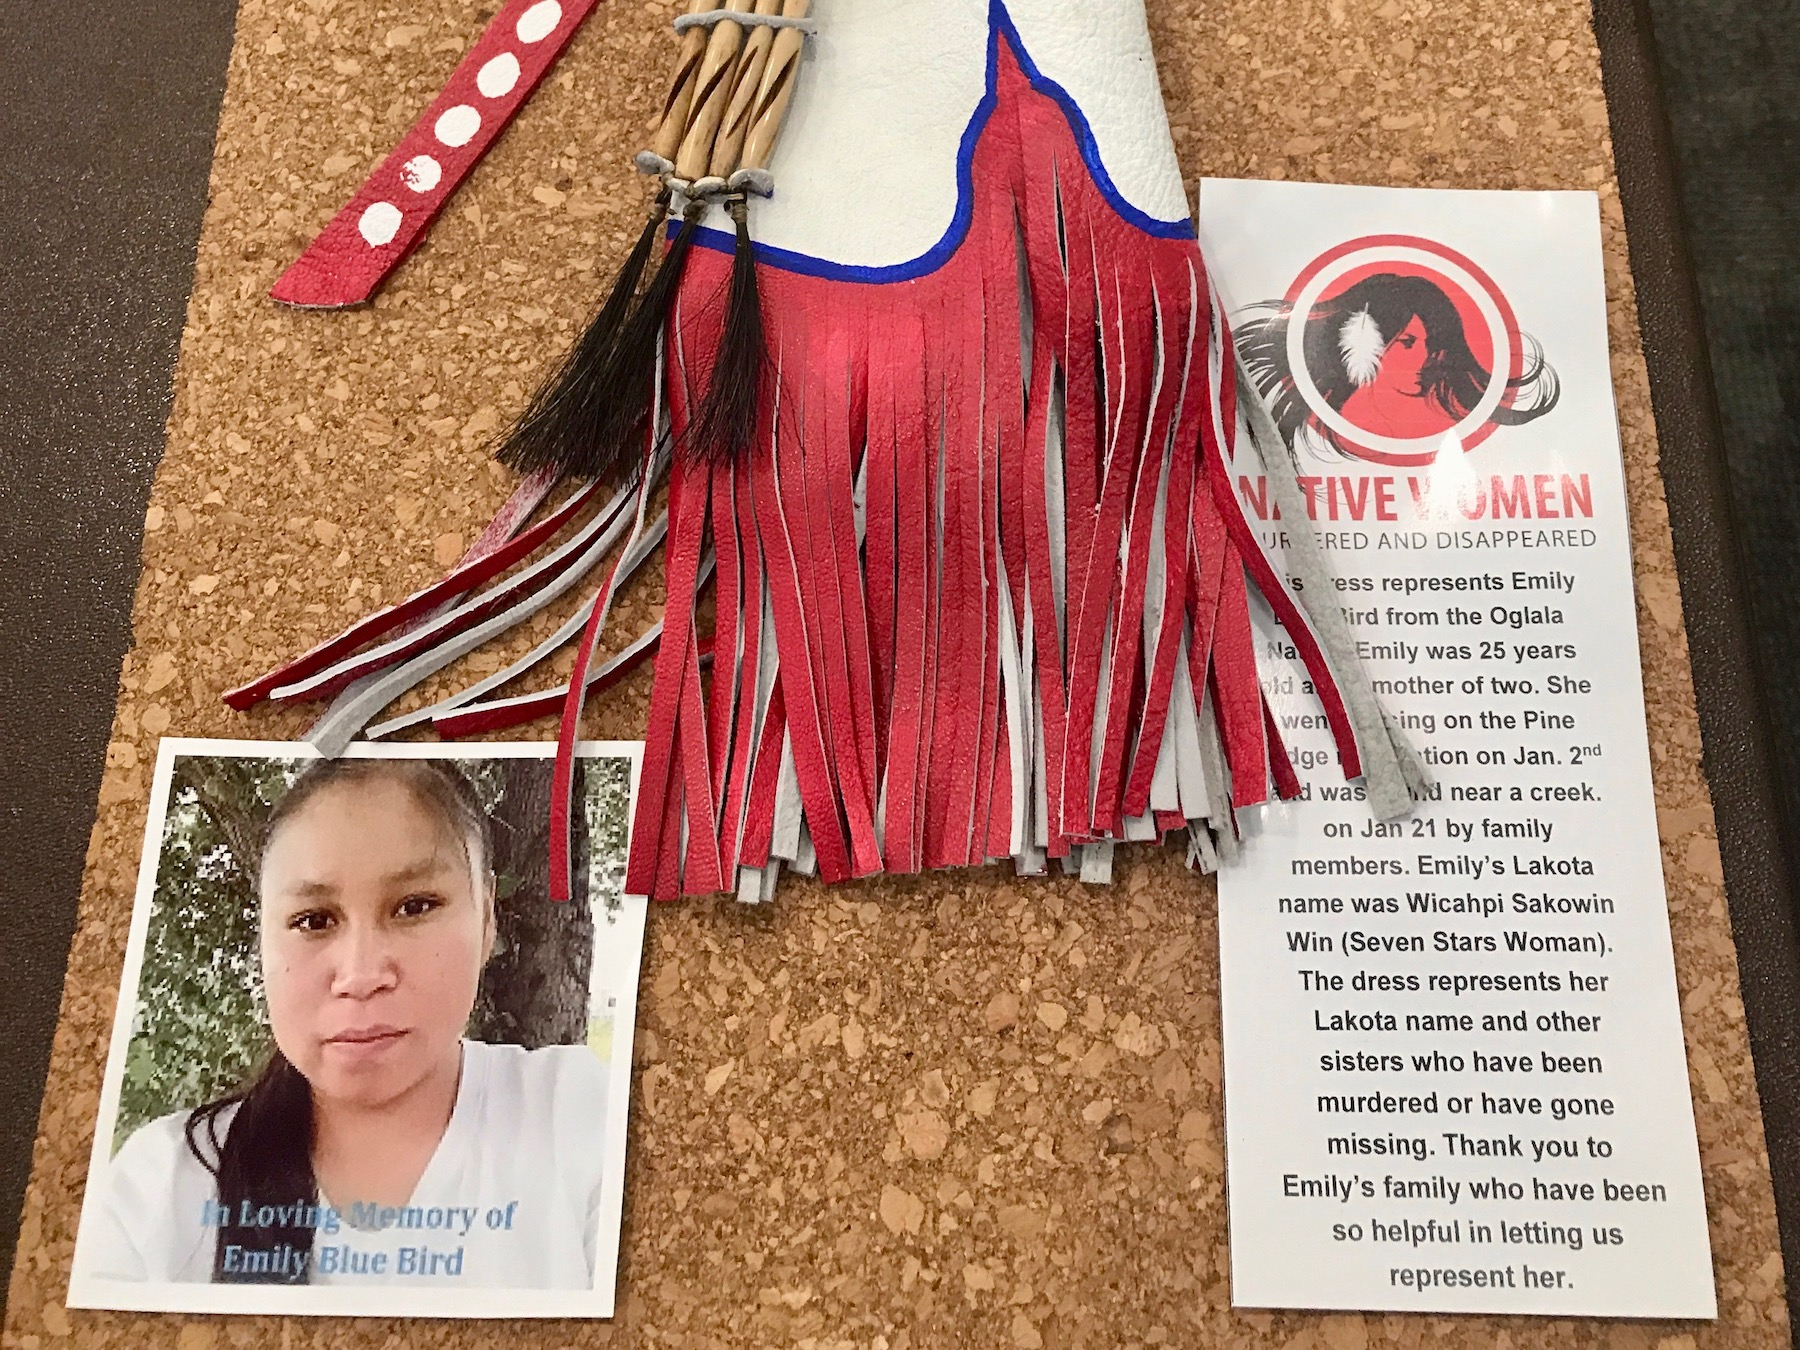 Native women push for more action on missing and murdered sisters